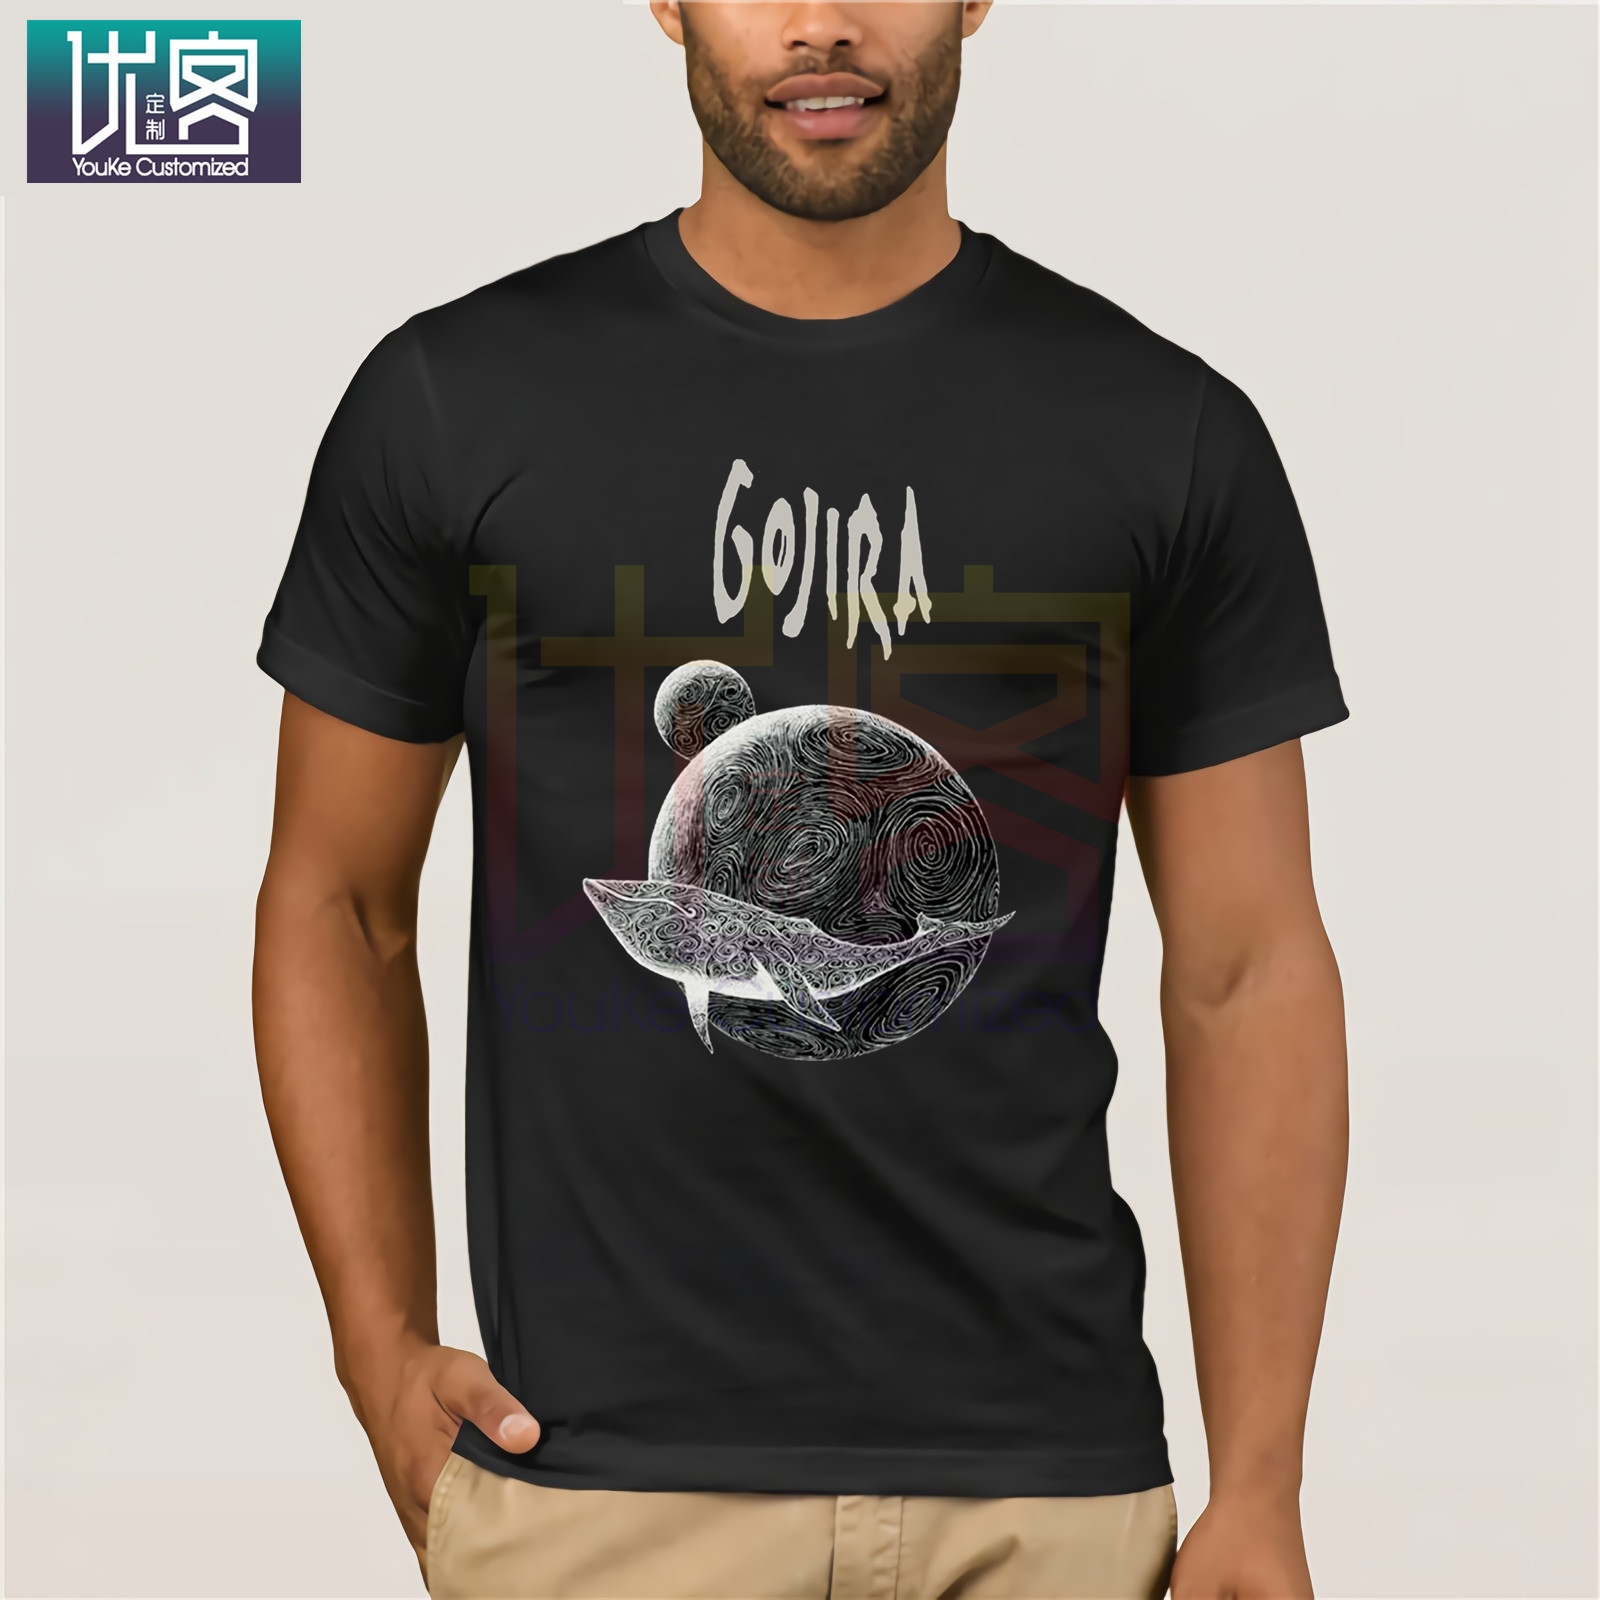 Gojira Men's Whale T-Shirt Black Clothes Popular T-Shirt Crewneck 100% Cotton Tees Amazing Short Sleeve Unique Vintage Crew Neck